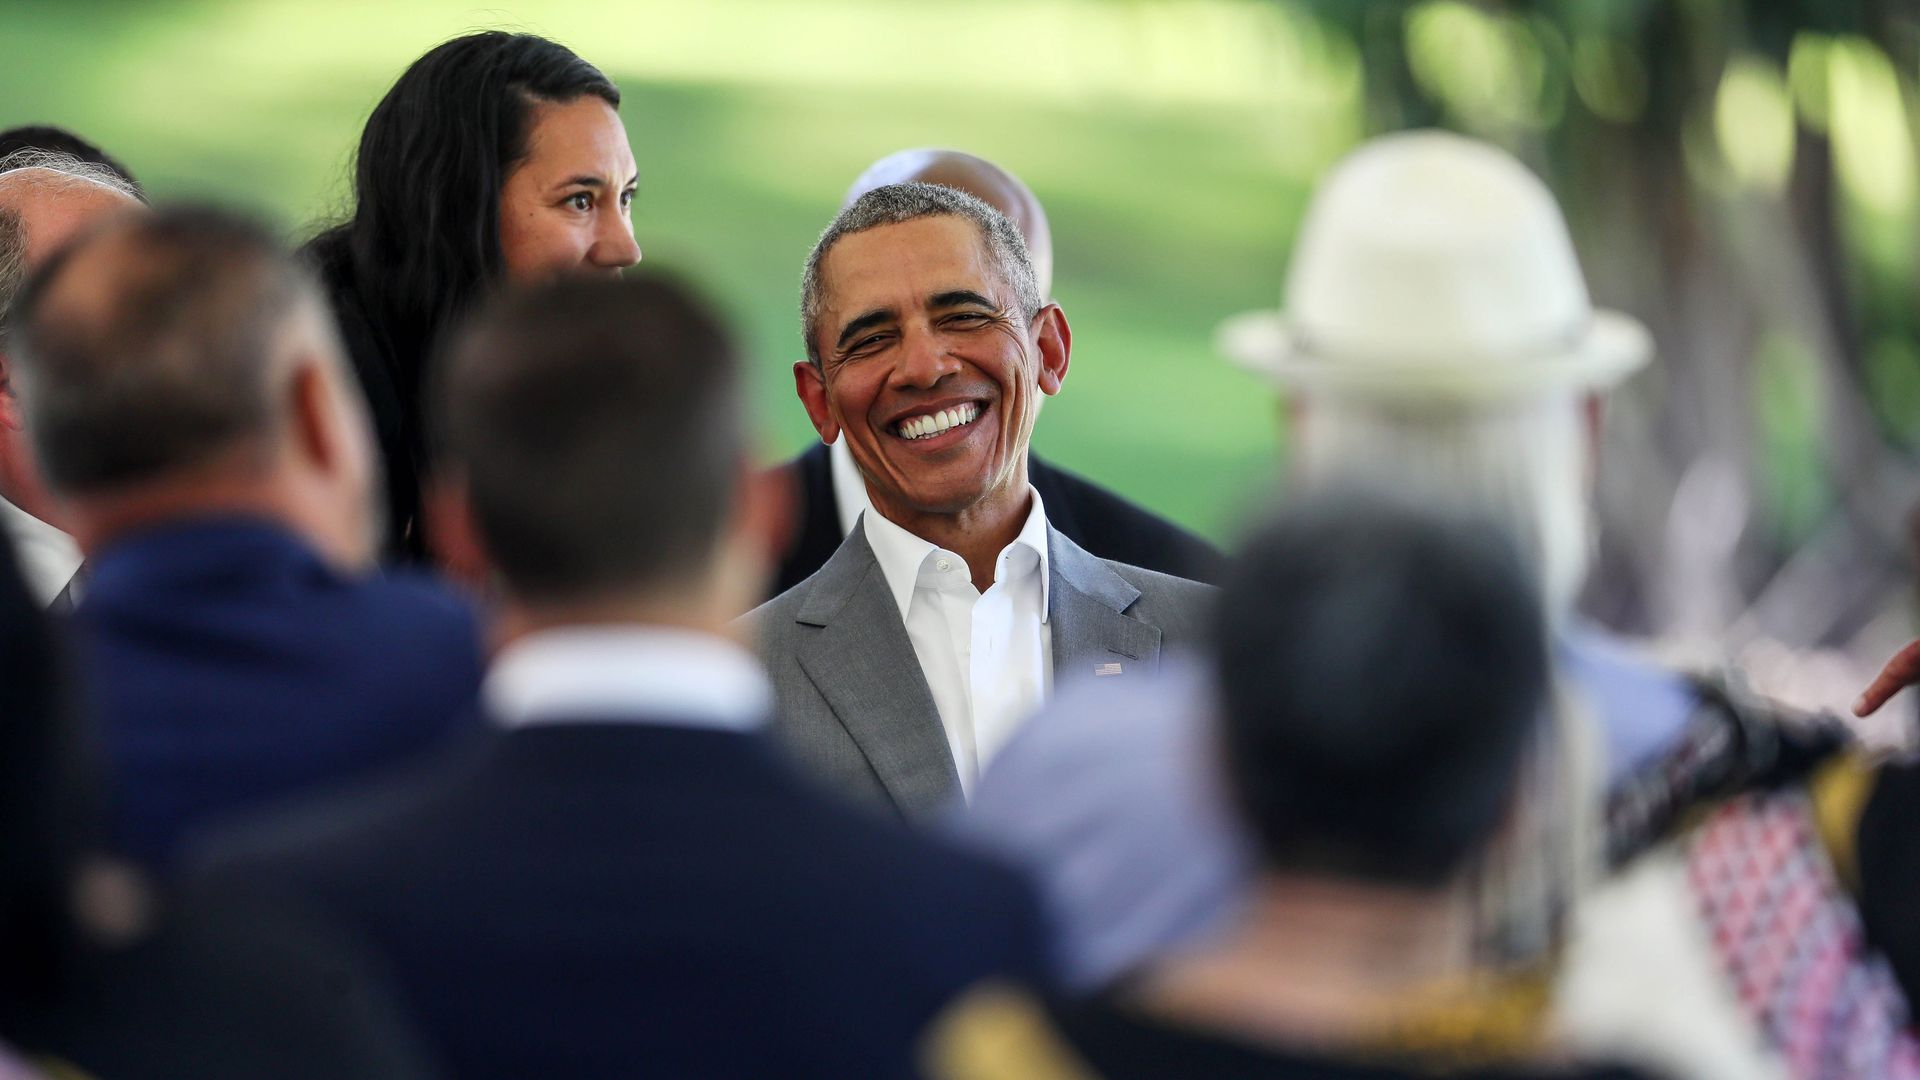 Former president Barack Obama smiling in a crowd.